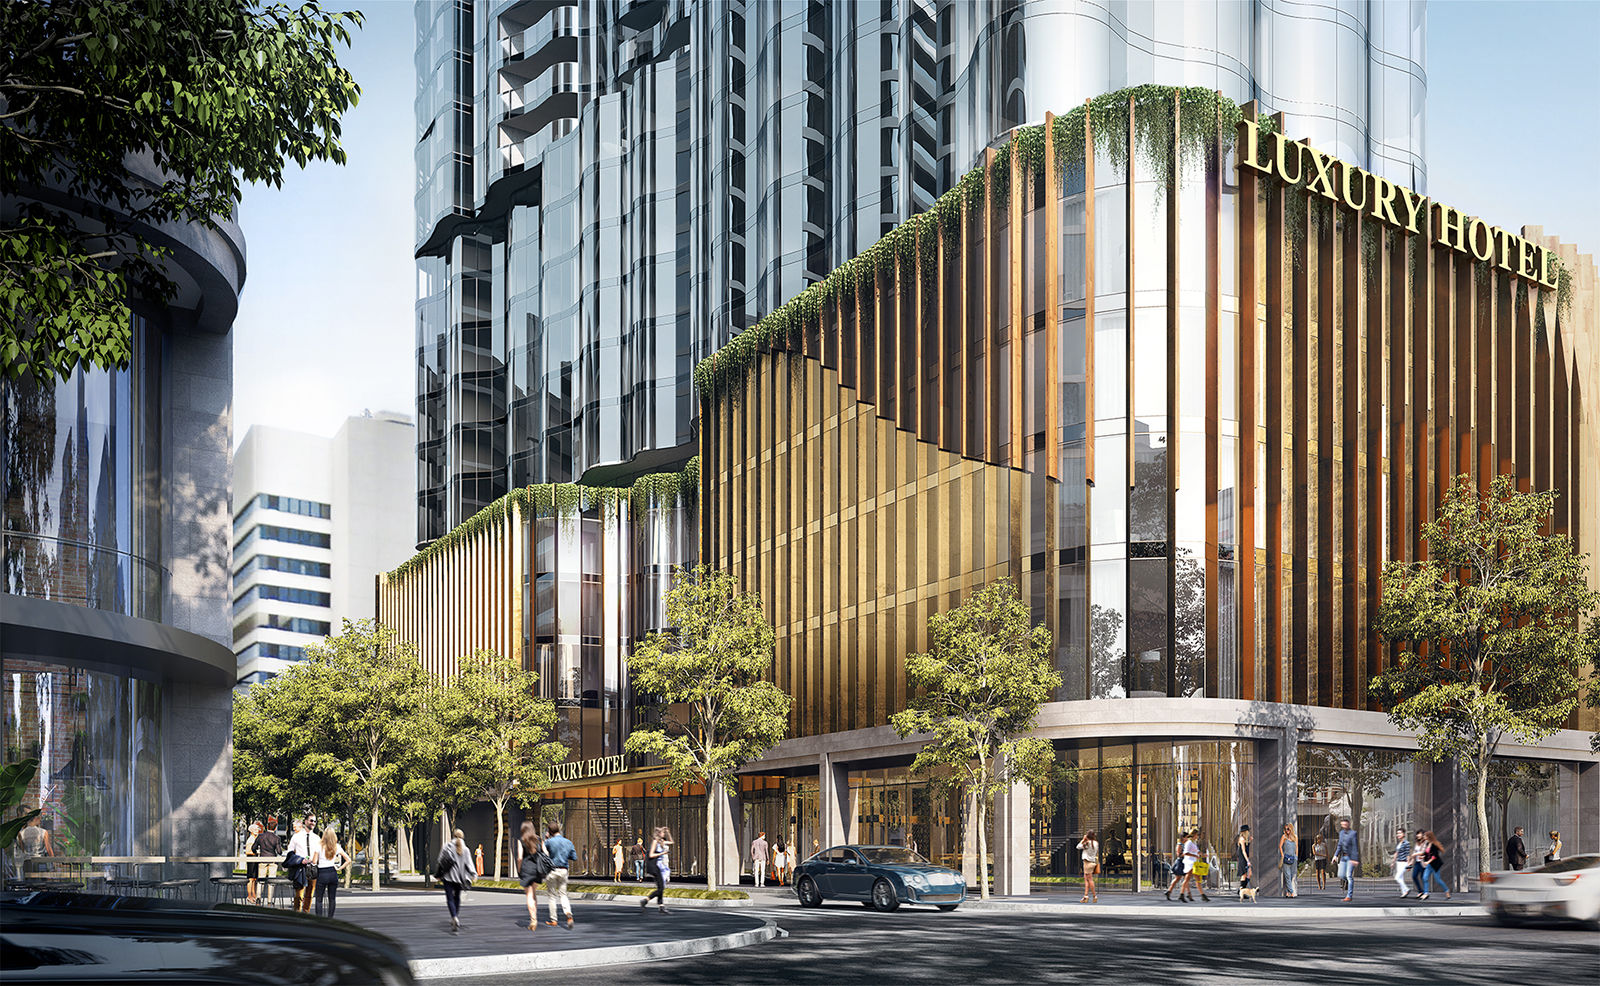 AN UNRIVALLEDLUXURY PRECINCT - An exciting new destination for Melbourne, Flinders Bank integrates a vibrant retail podium, premium residences, luxurious amenities and the first St. Regis Hotel in Australia.